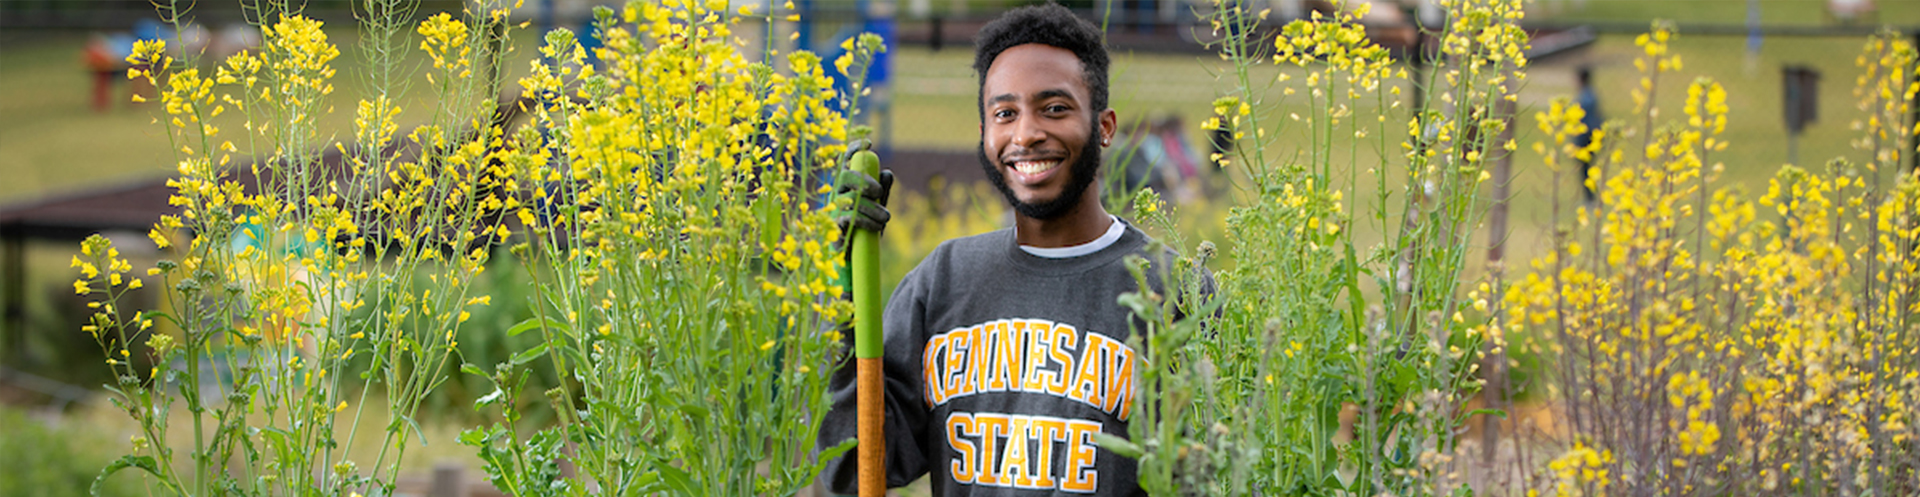 Kennesaw State graduate cultivates awareness of hunger, food insecurity